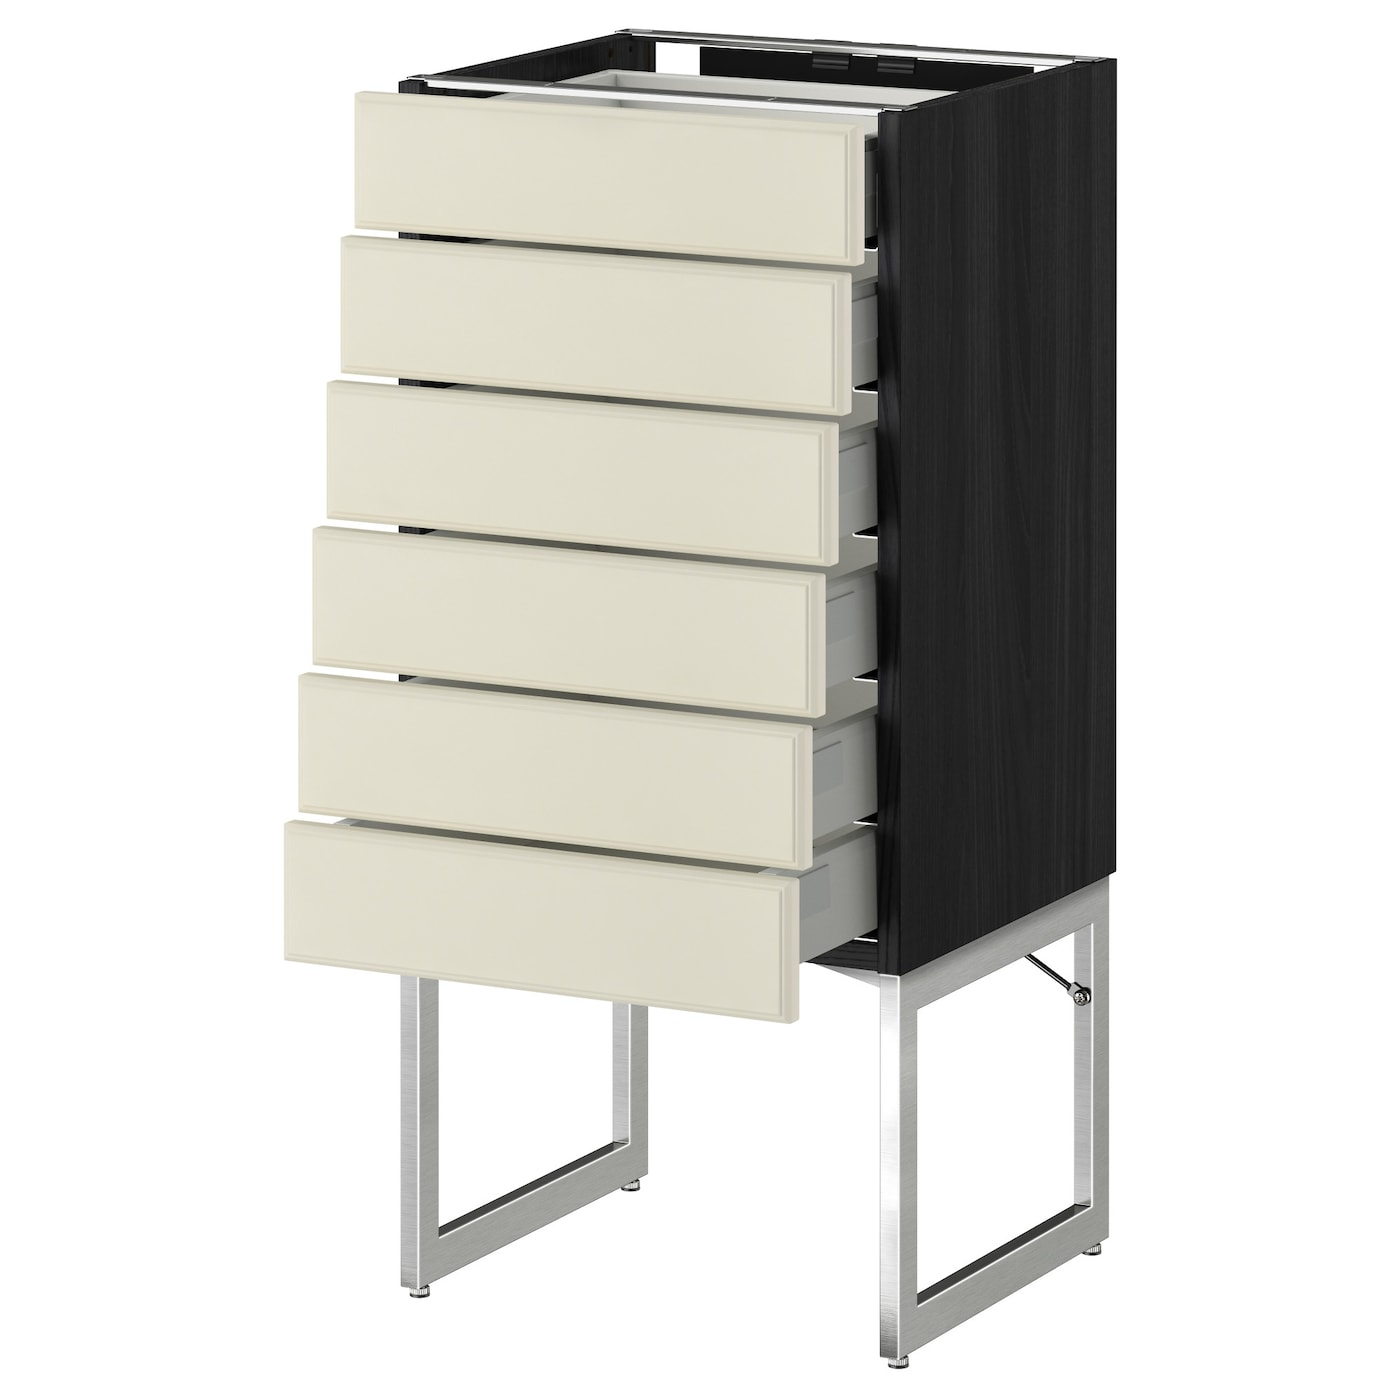 Metod Maximera Base Cabinet 6 Fronts 6 Low Drawers Black Bodbyn Off White 40x37x60 Cm Ikea